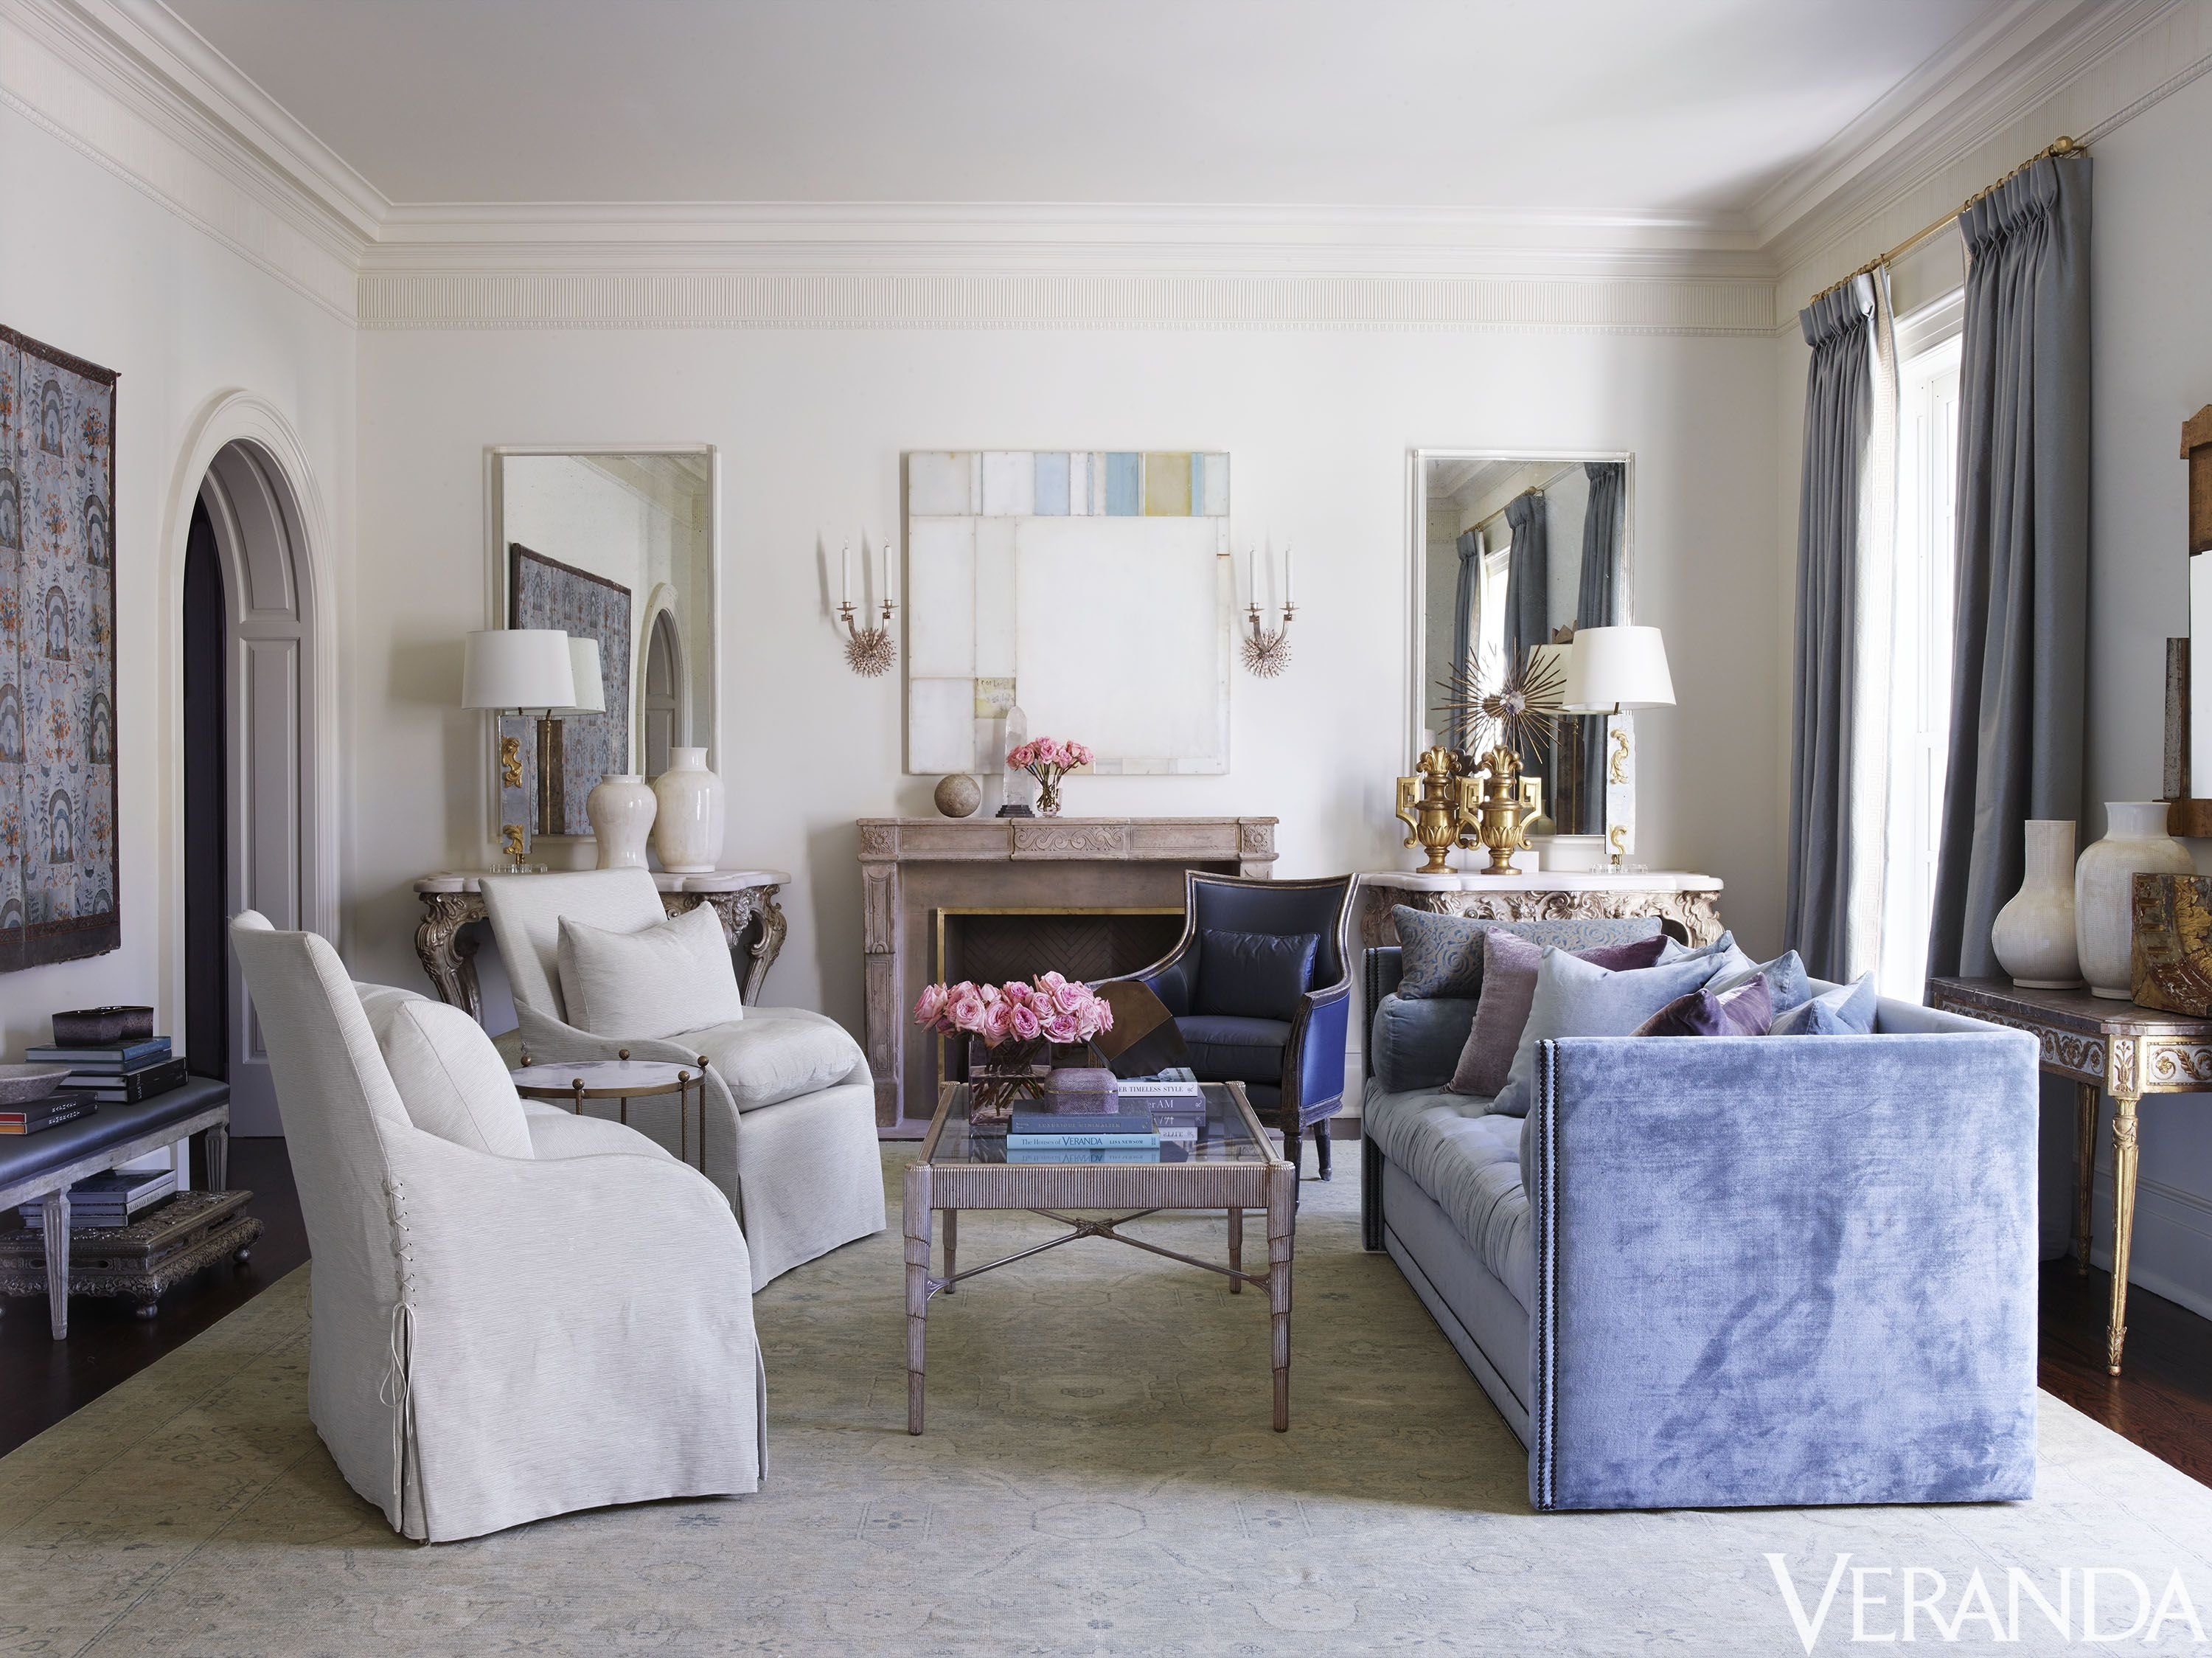 10 Pretty Ideas For A Living Room 22 best living room ideas luxury living room decor furniture ideas 1 2020